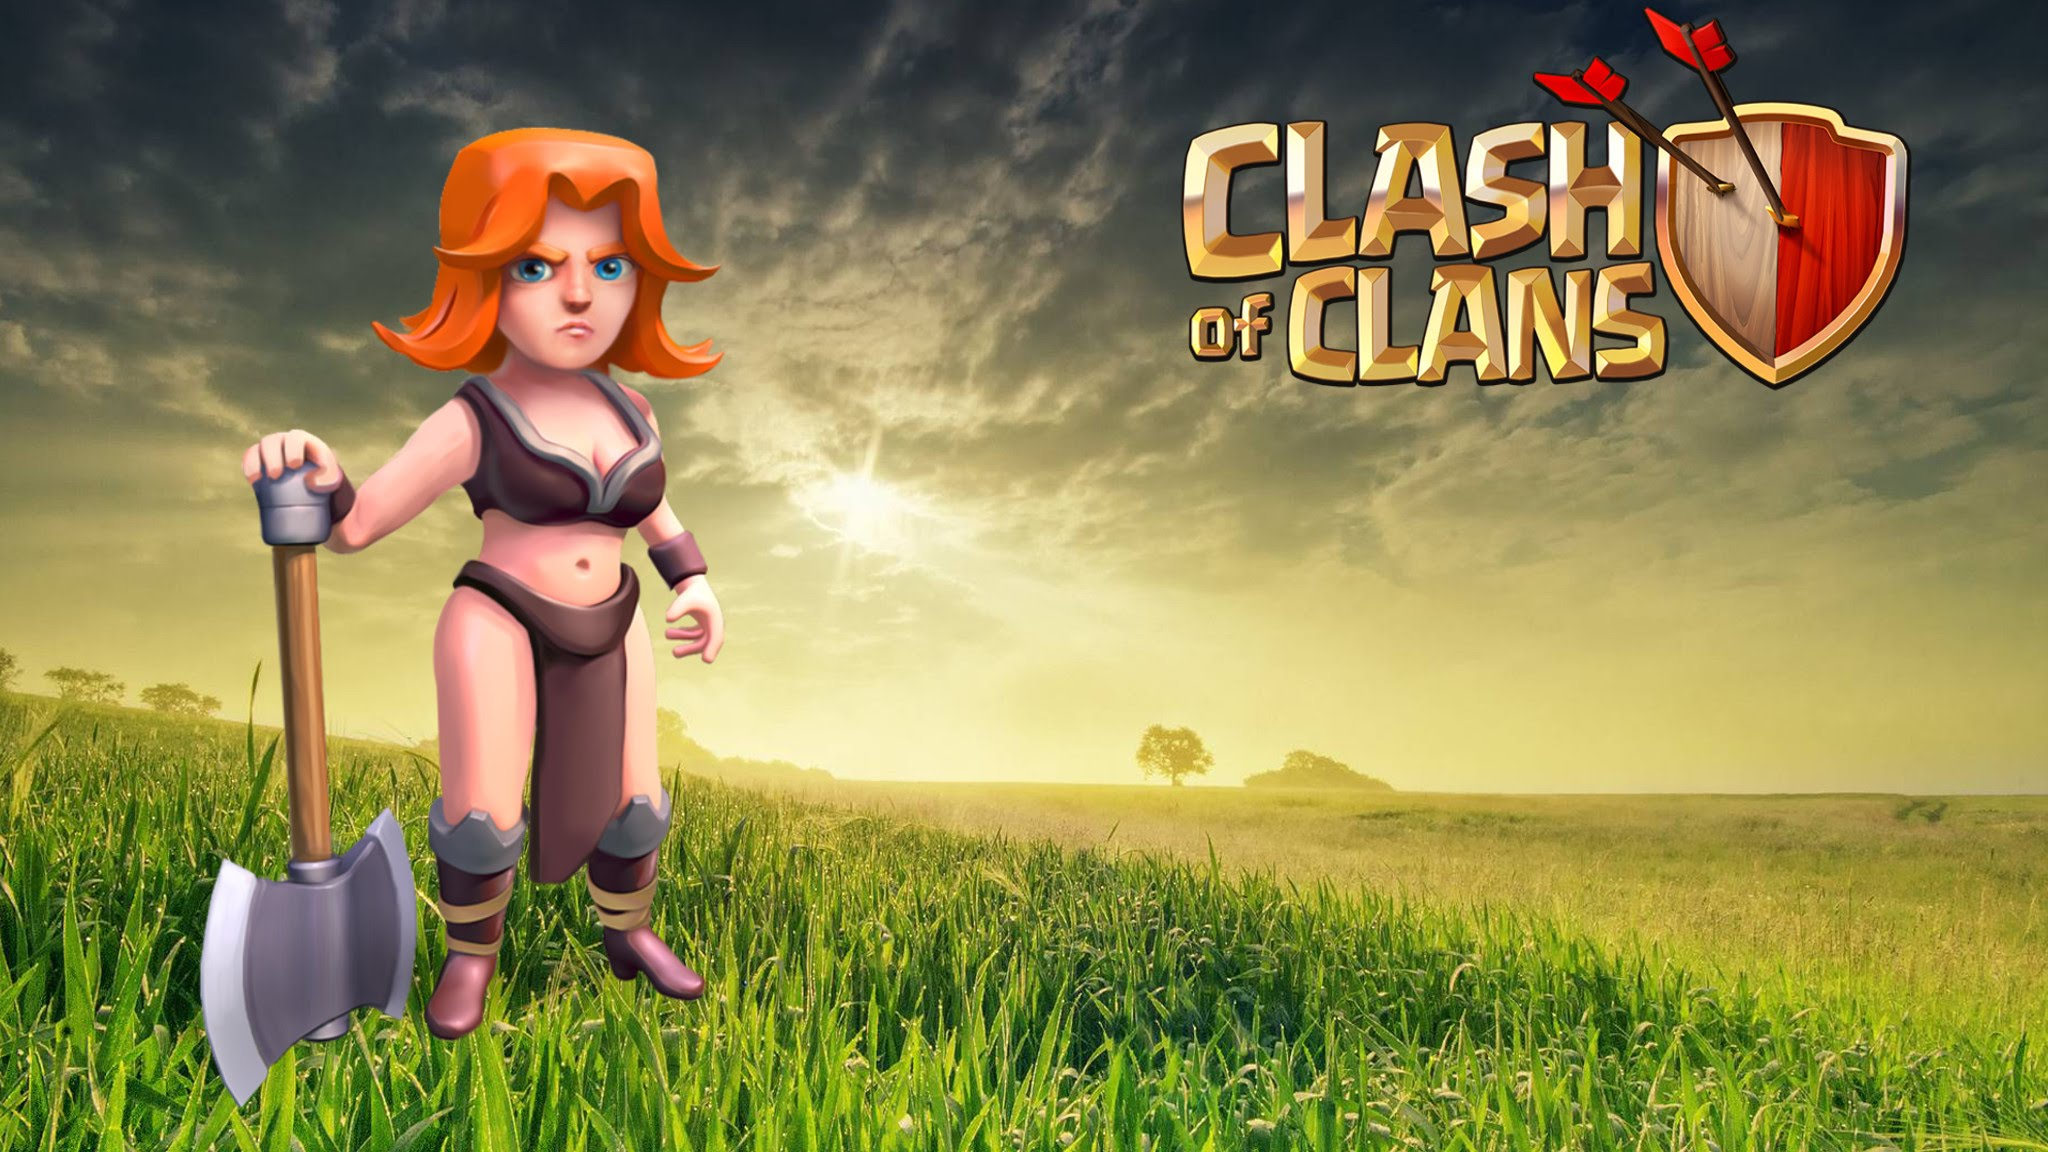 Clash of Clans Valkyrie Wallpapers HD